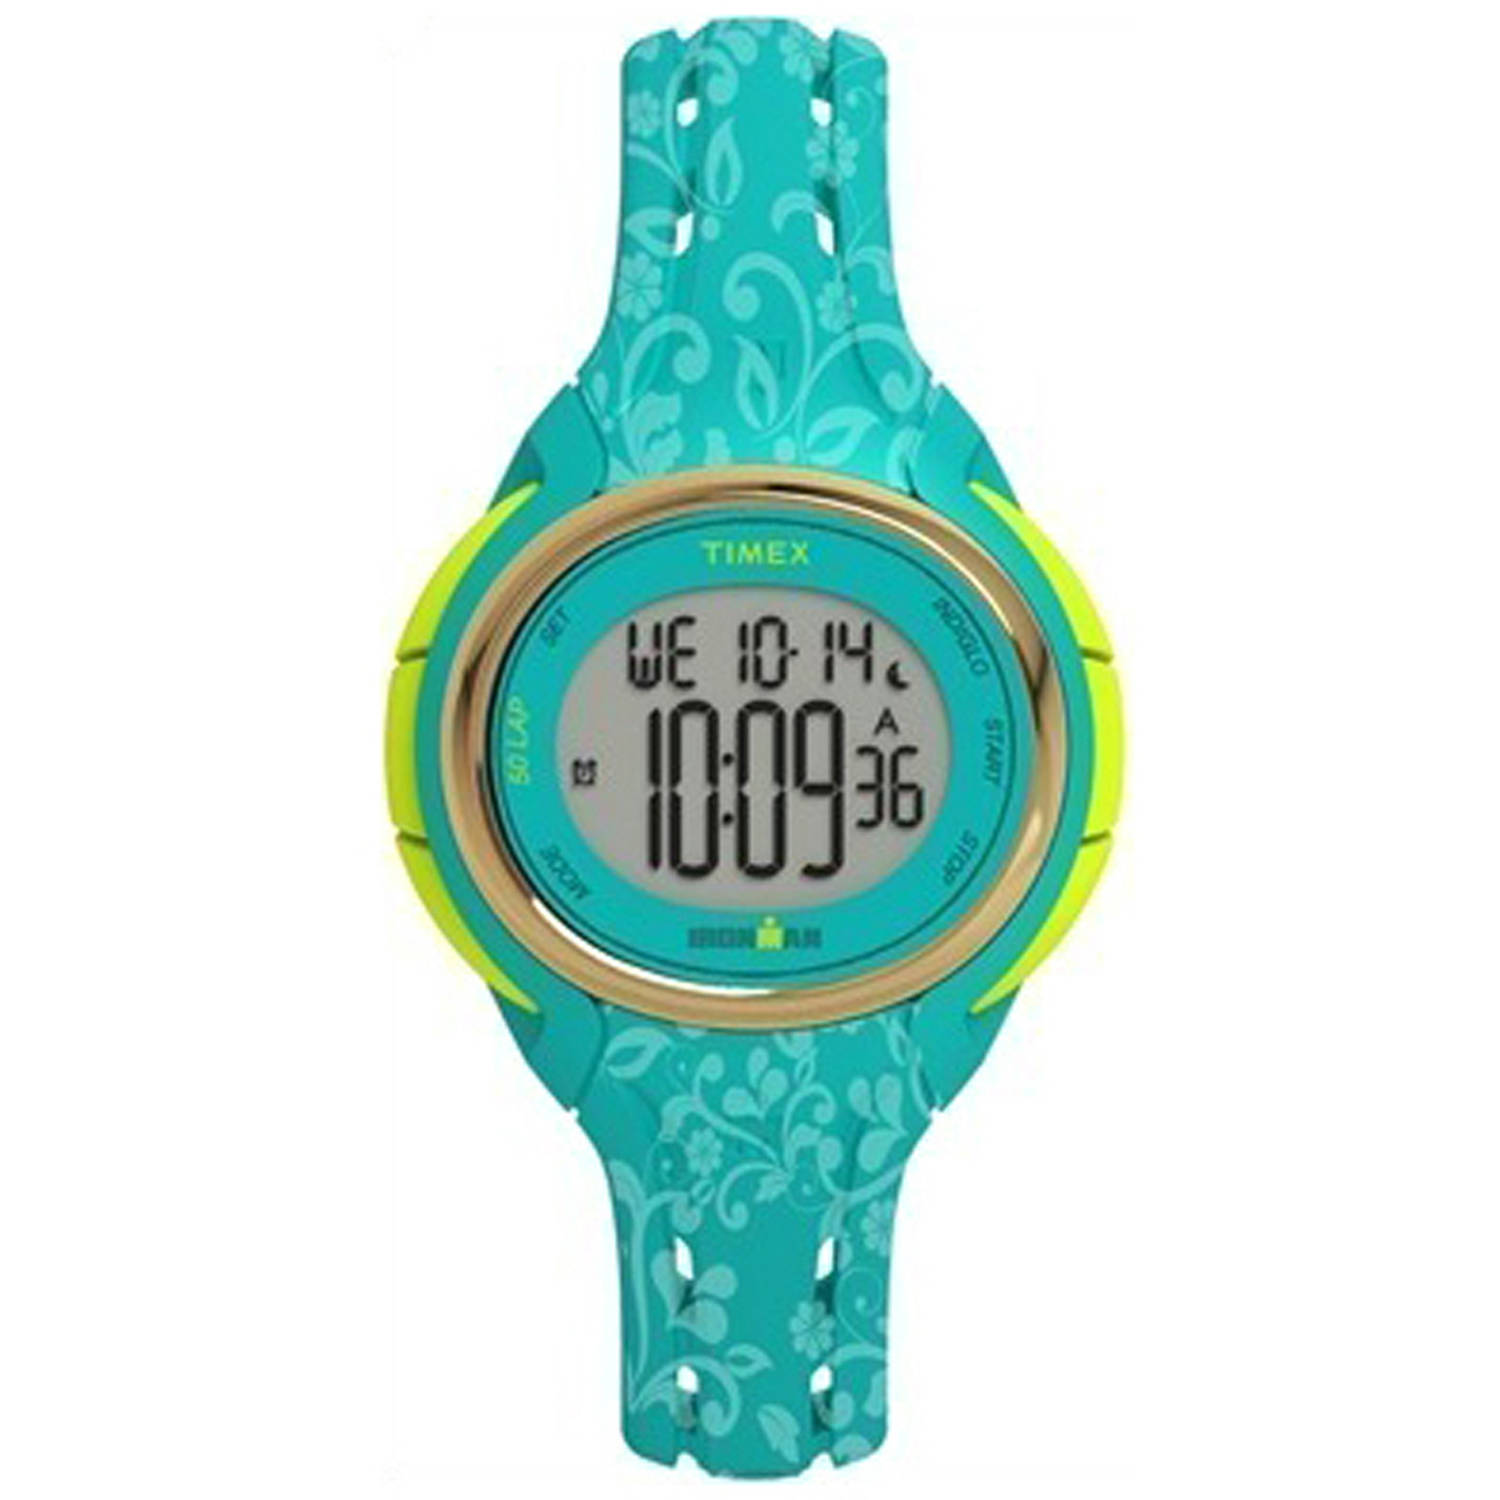 Timex Women's Ironman Sleek 50 Floral Mid-Size Watch, Blue Resin Strap